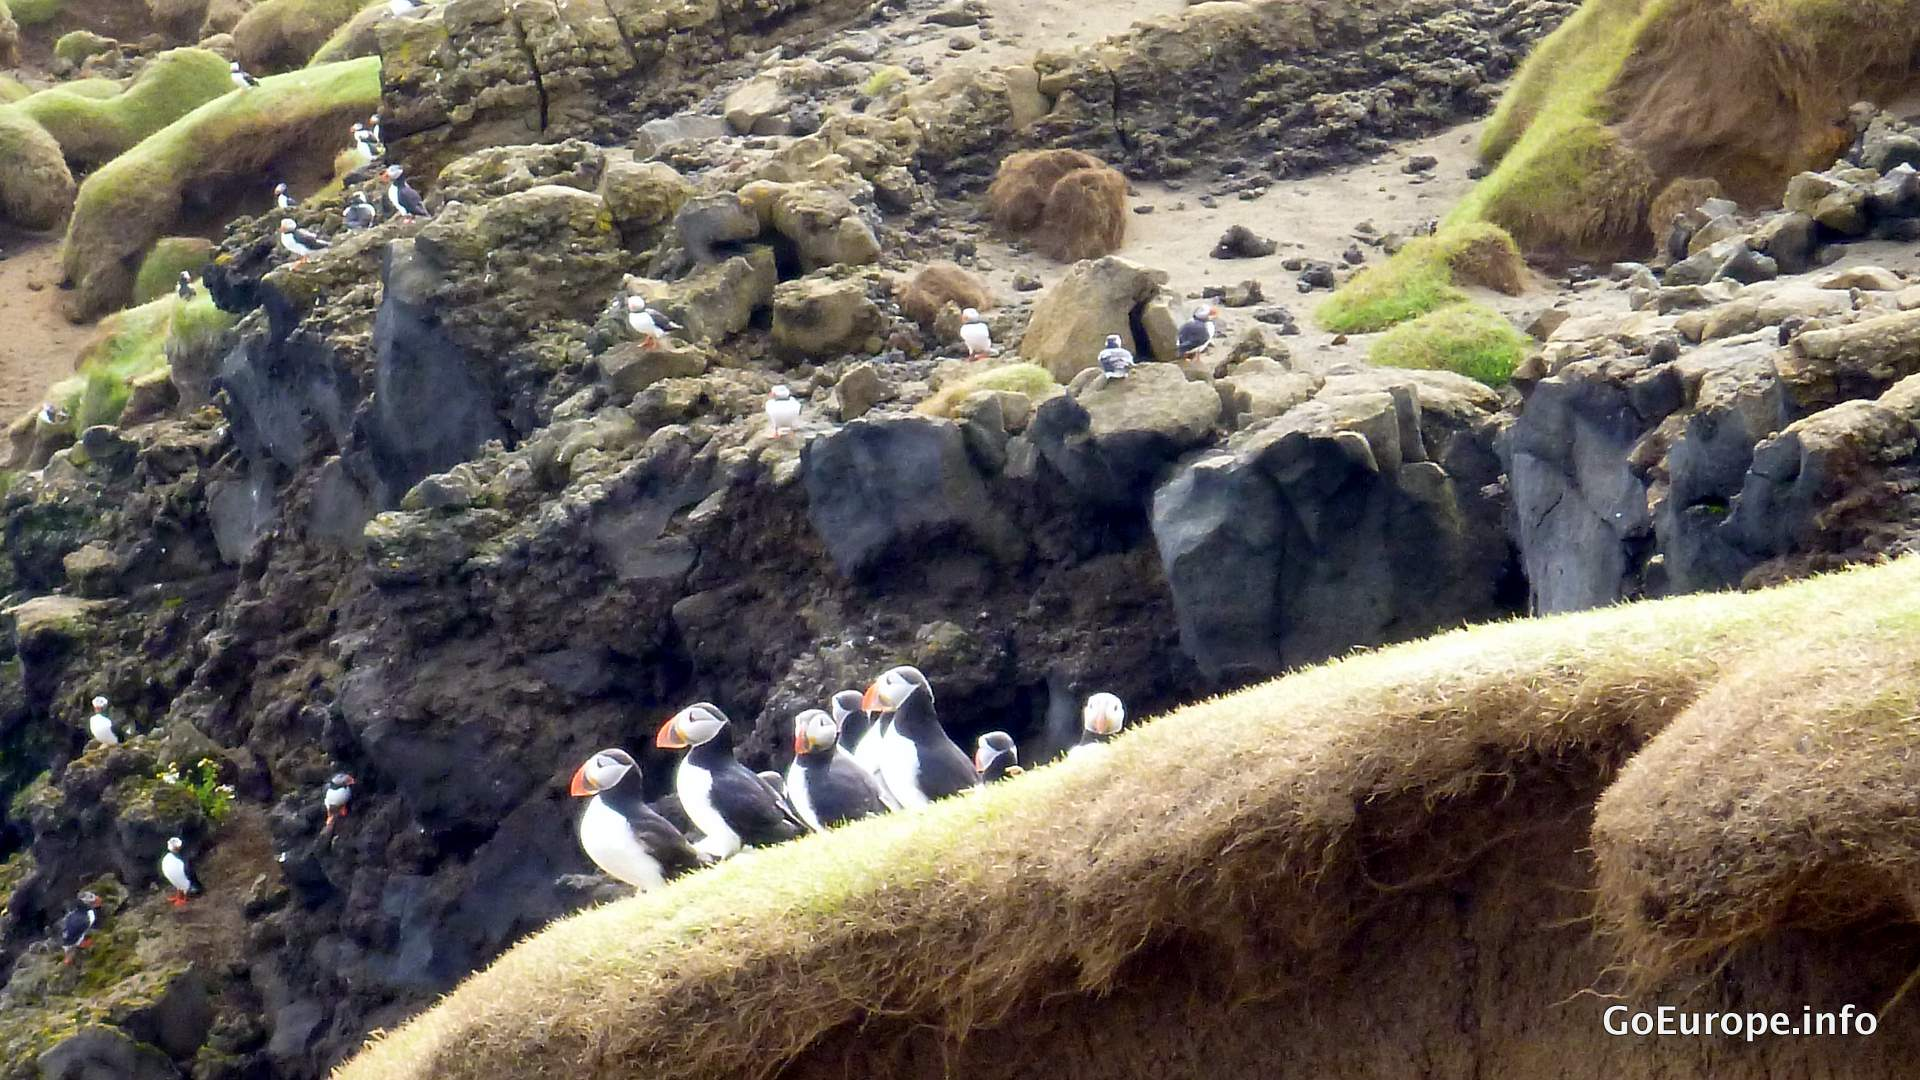 Puffins at the cliffs.